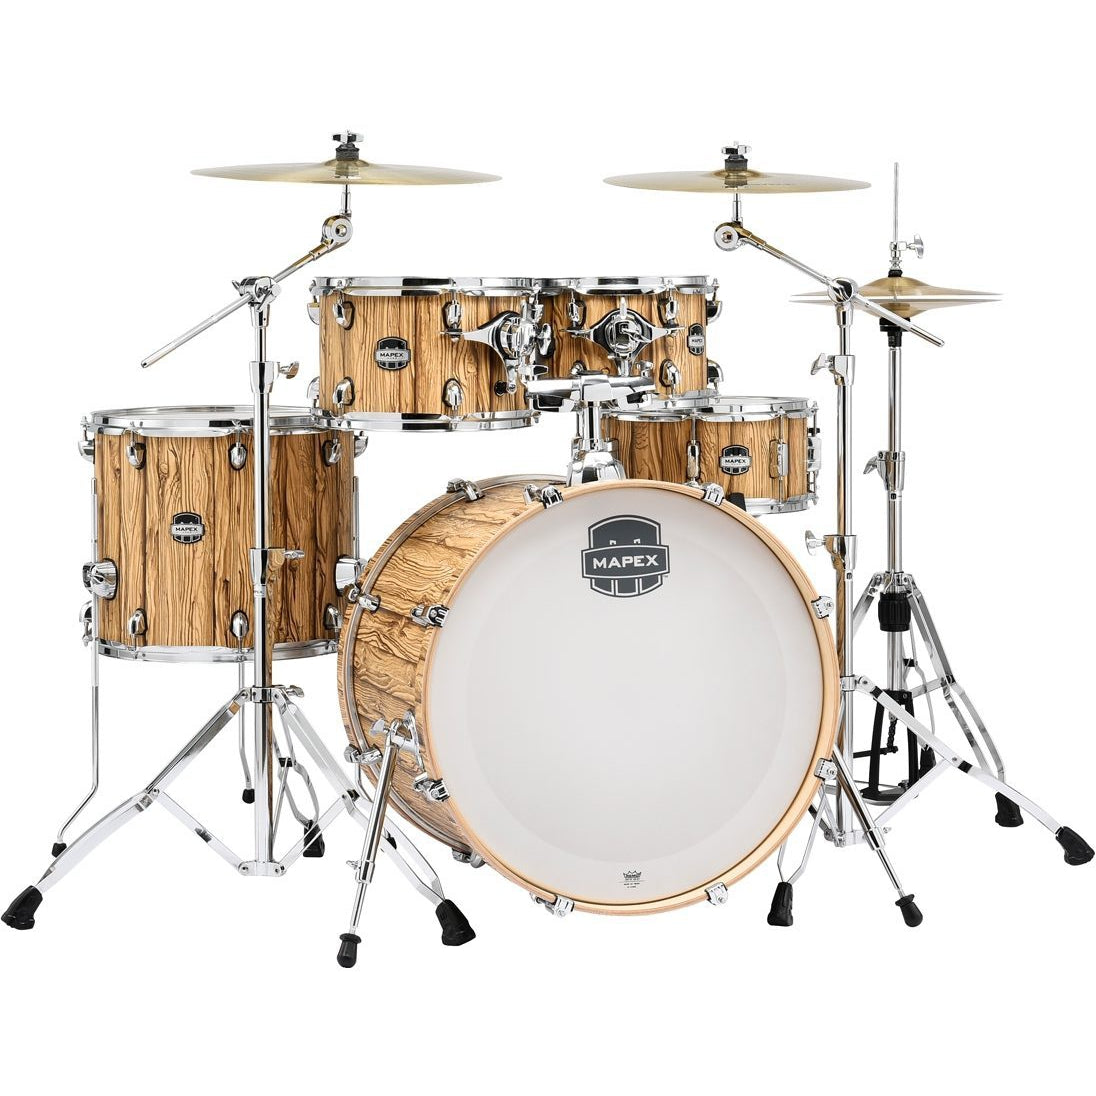 Mapex Mars Rock 5-Piece Drum Shell Pack - Driftwood with Chrome Rims